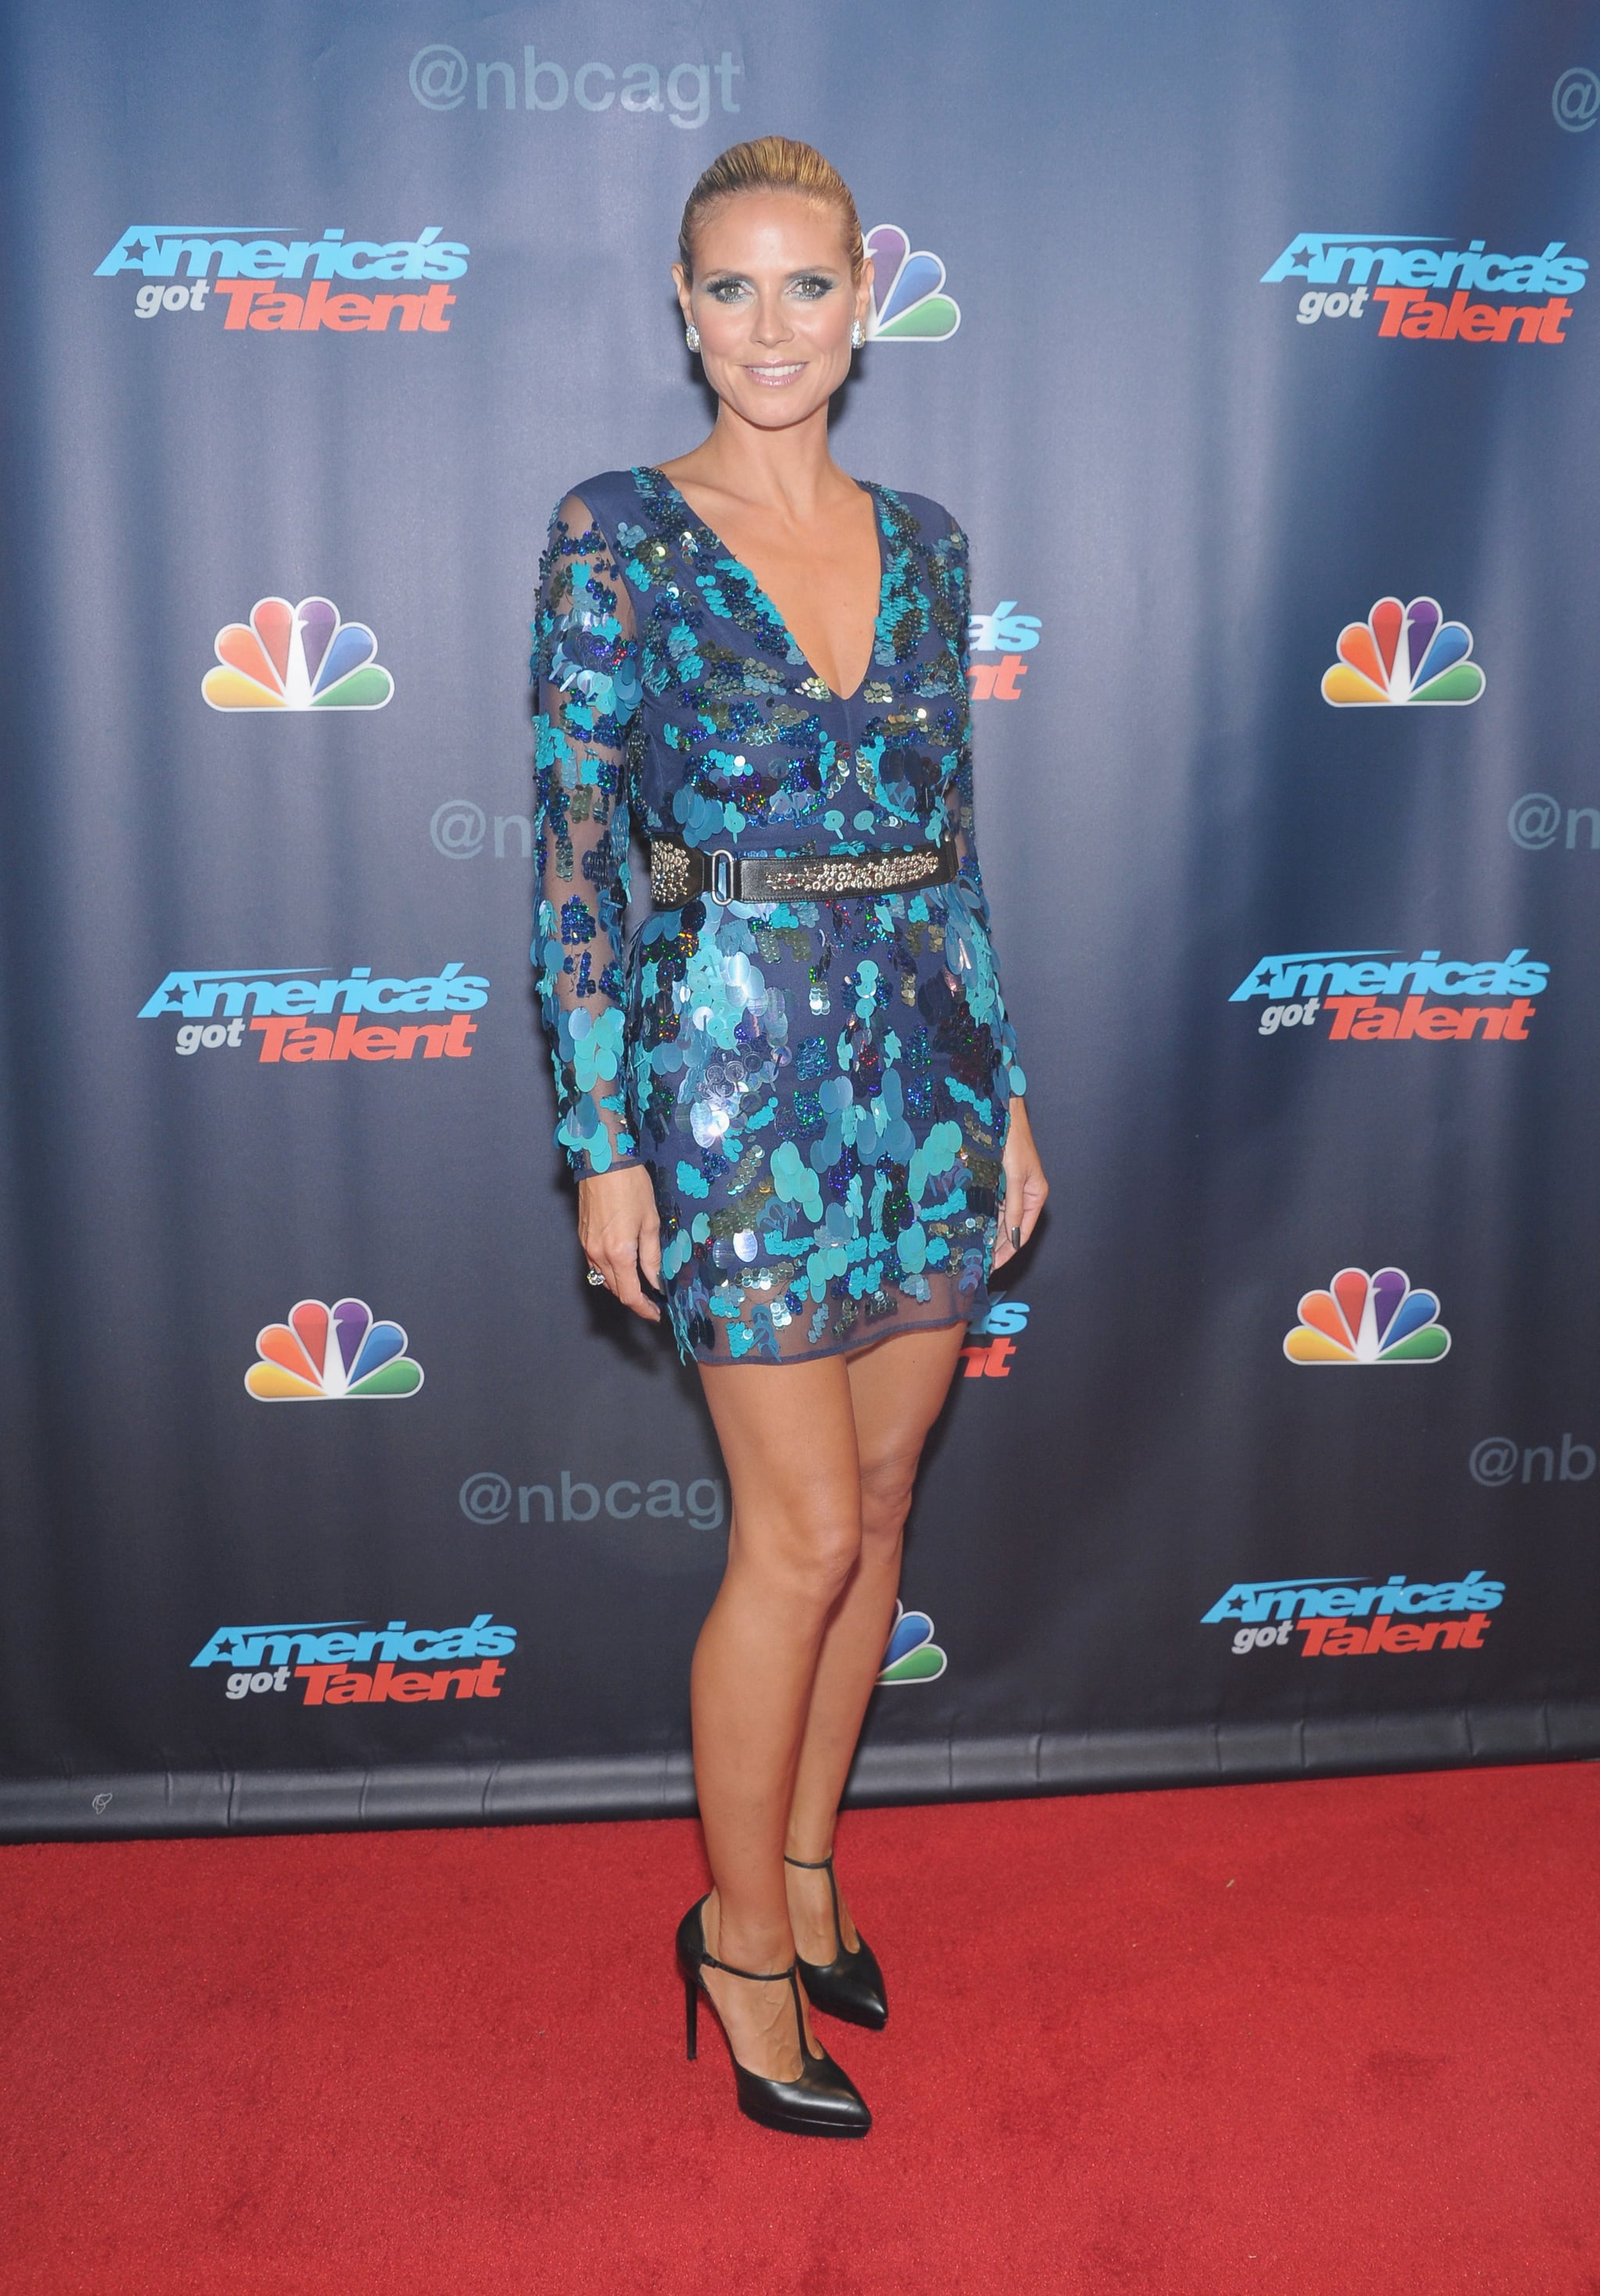 Heidi Klum donned an embellished minidress with black T-strap pumps at an America's Got Talent event in NYC.